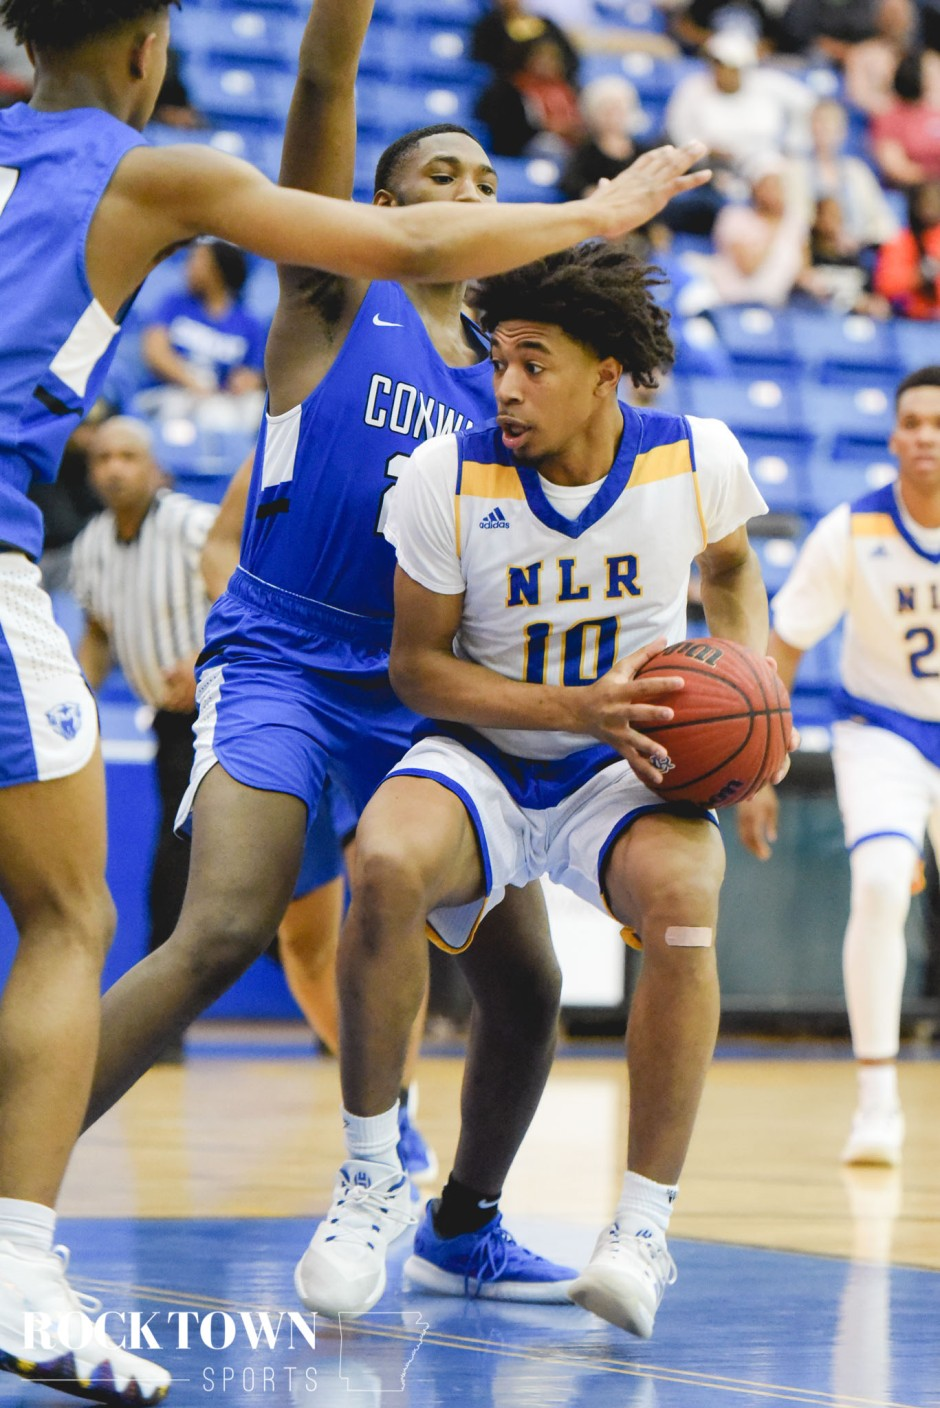 Conway_NLR_bball19(i)-42